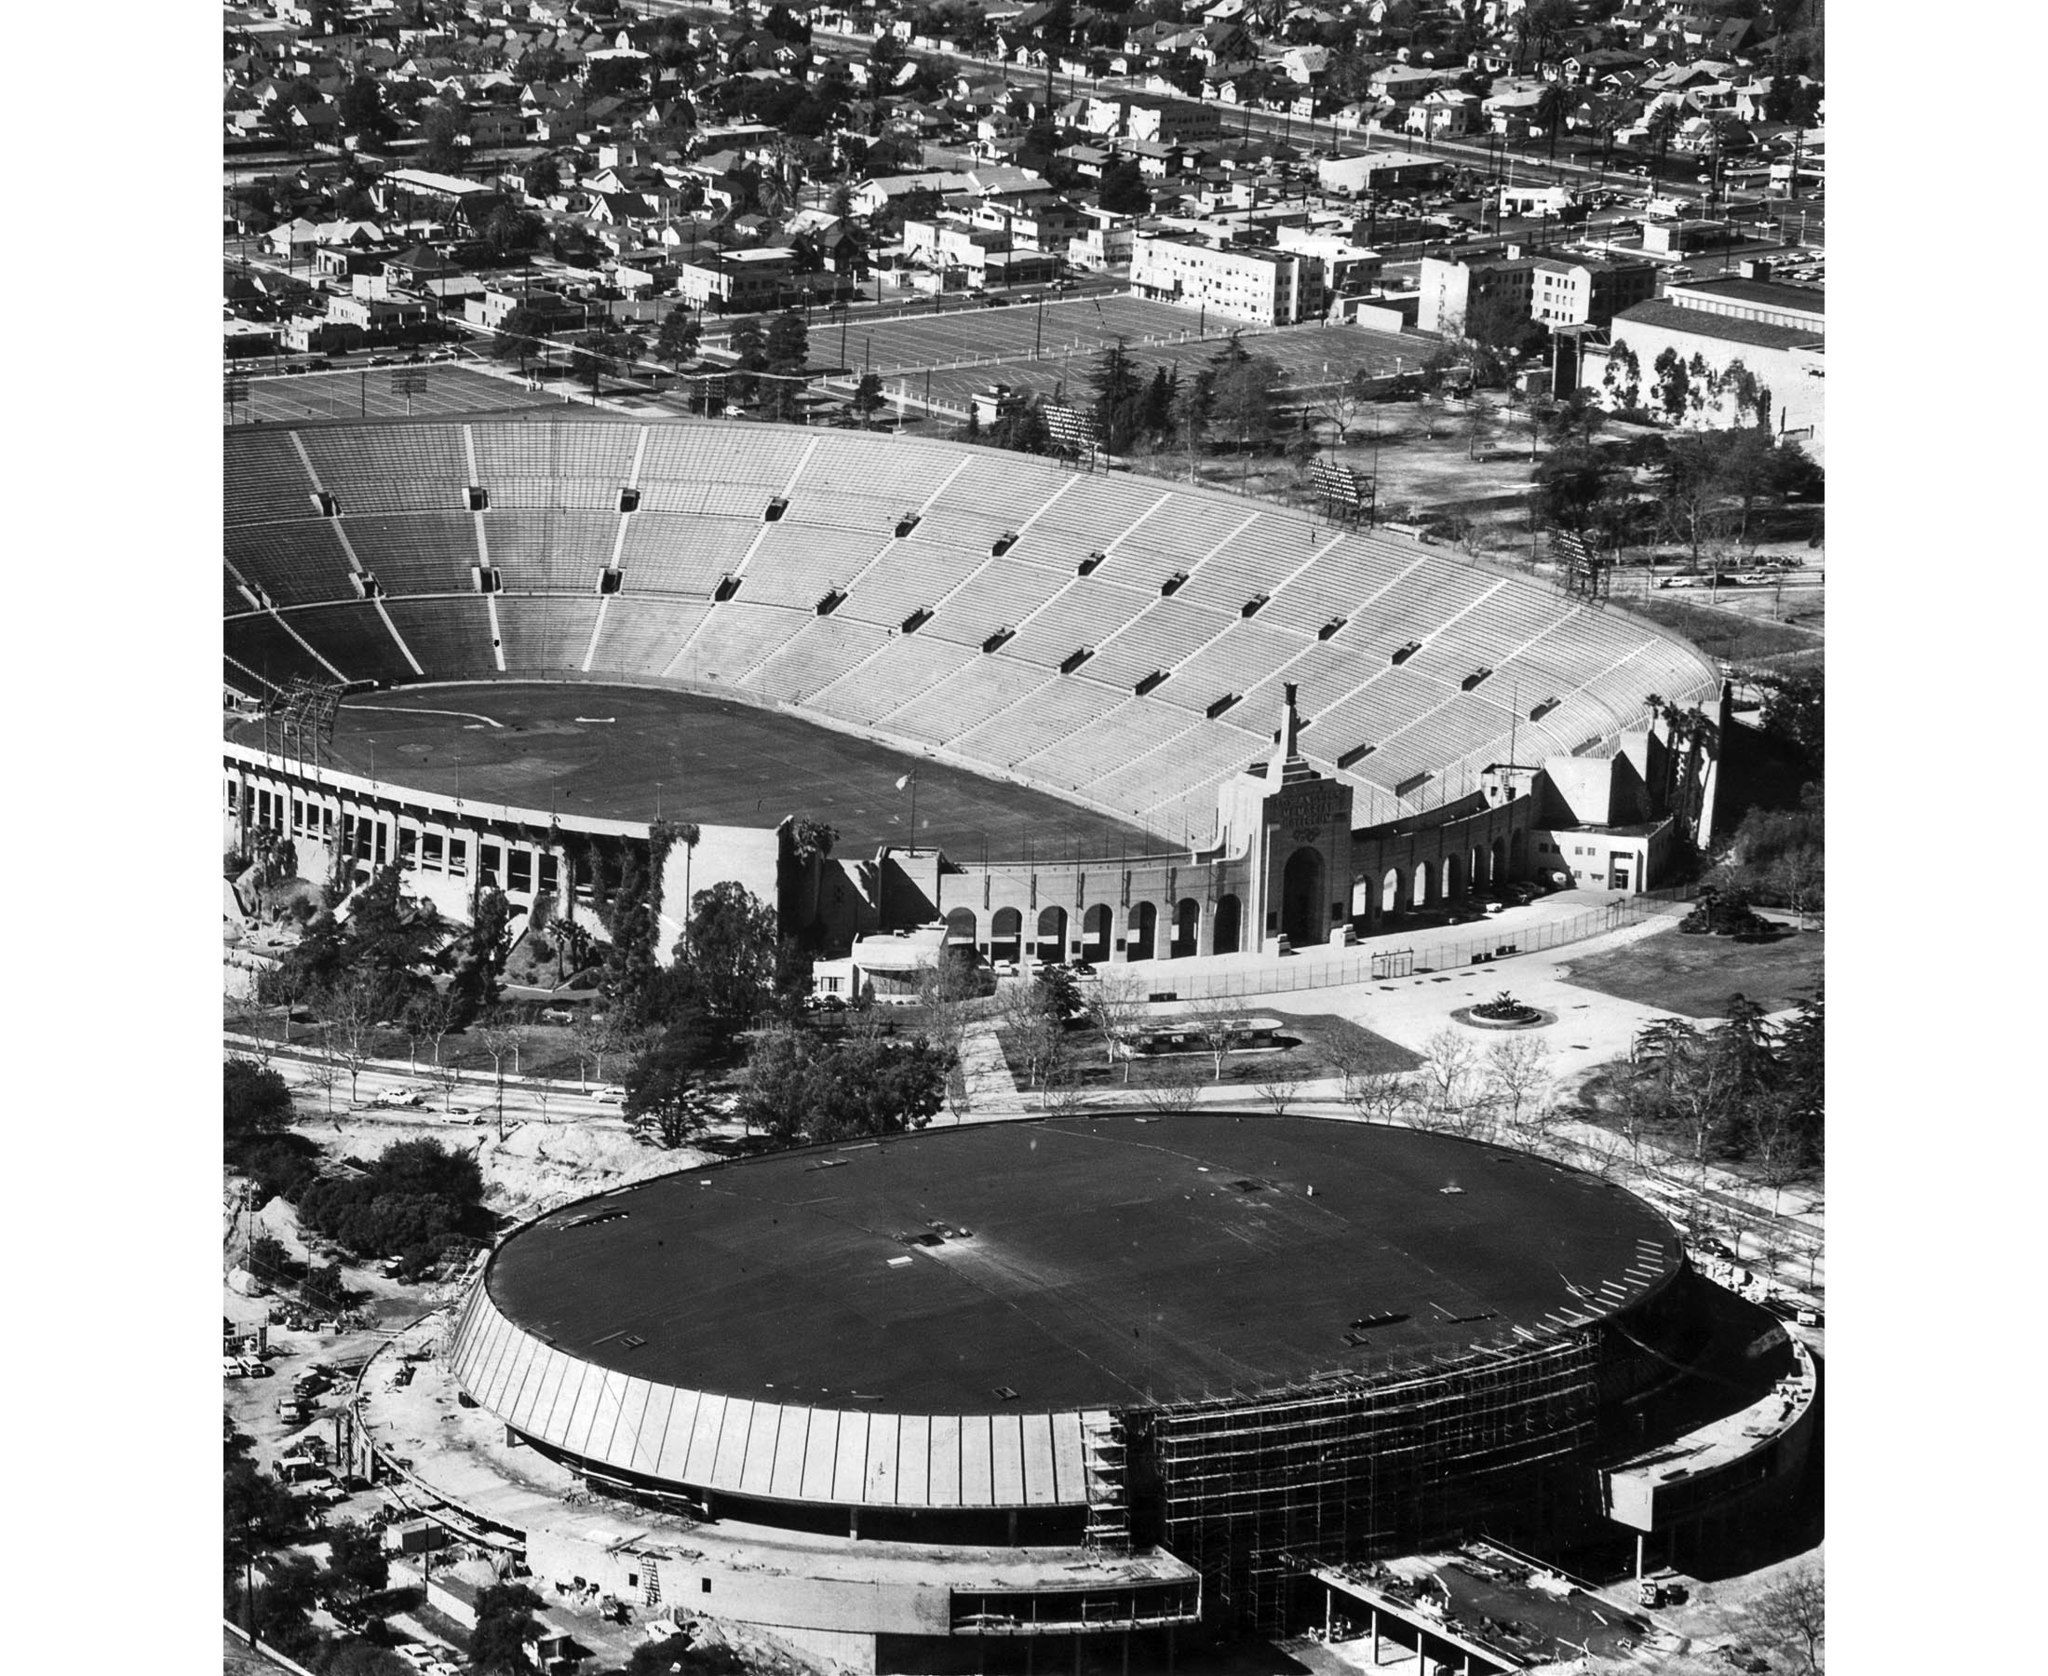 Early 1959: The Los Angeles Memorial Sports Arena under construction, foreground, with the Memorial